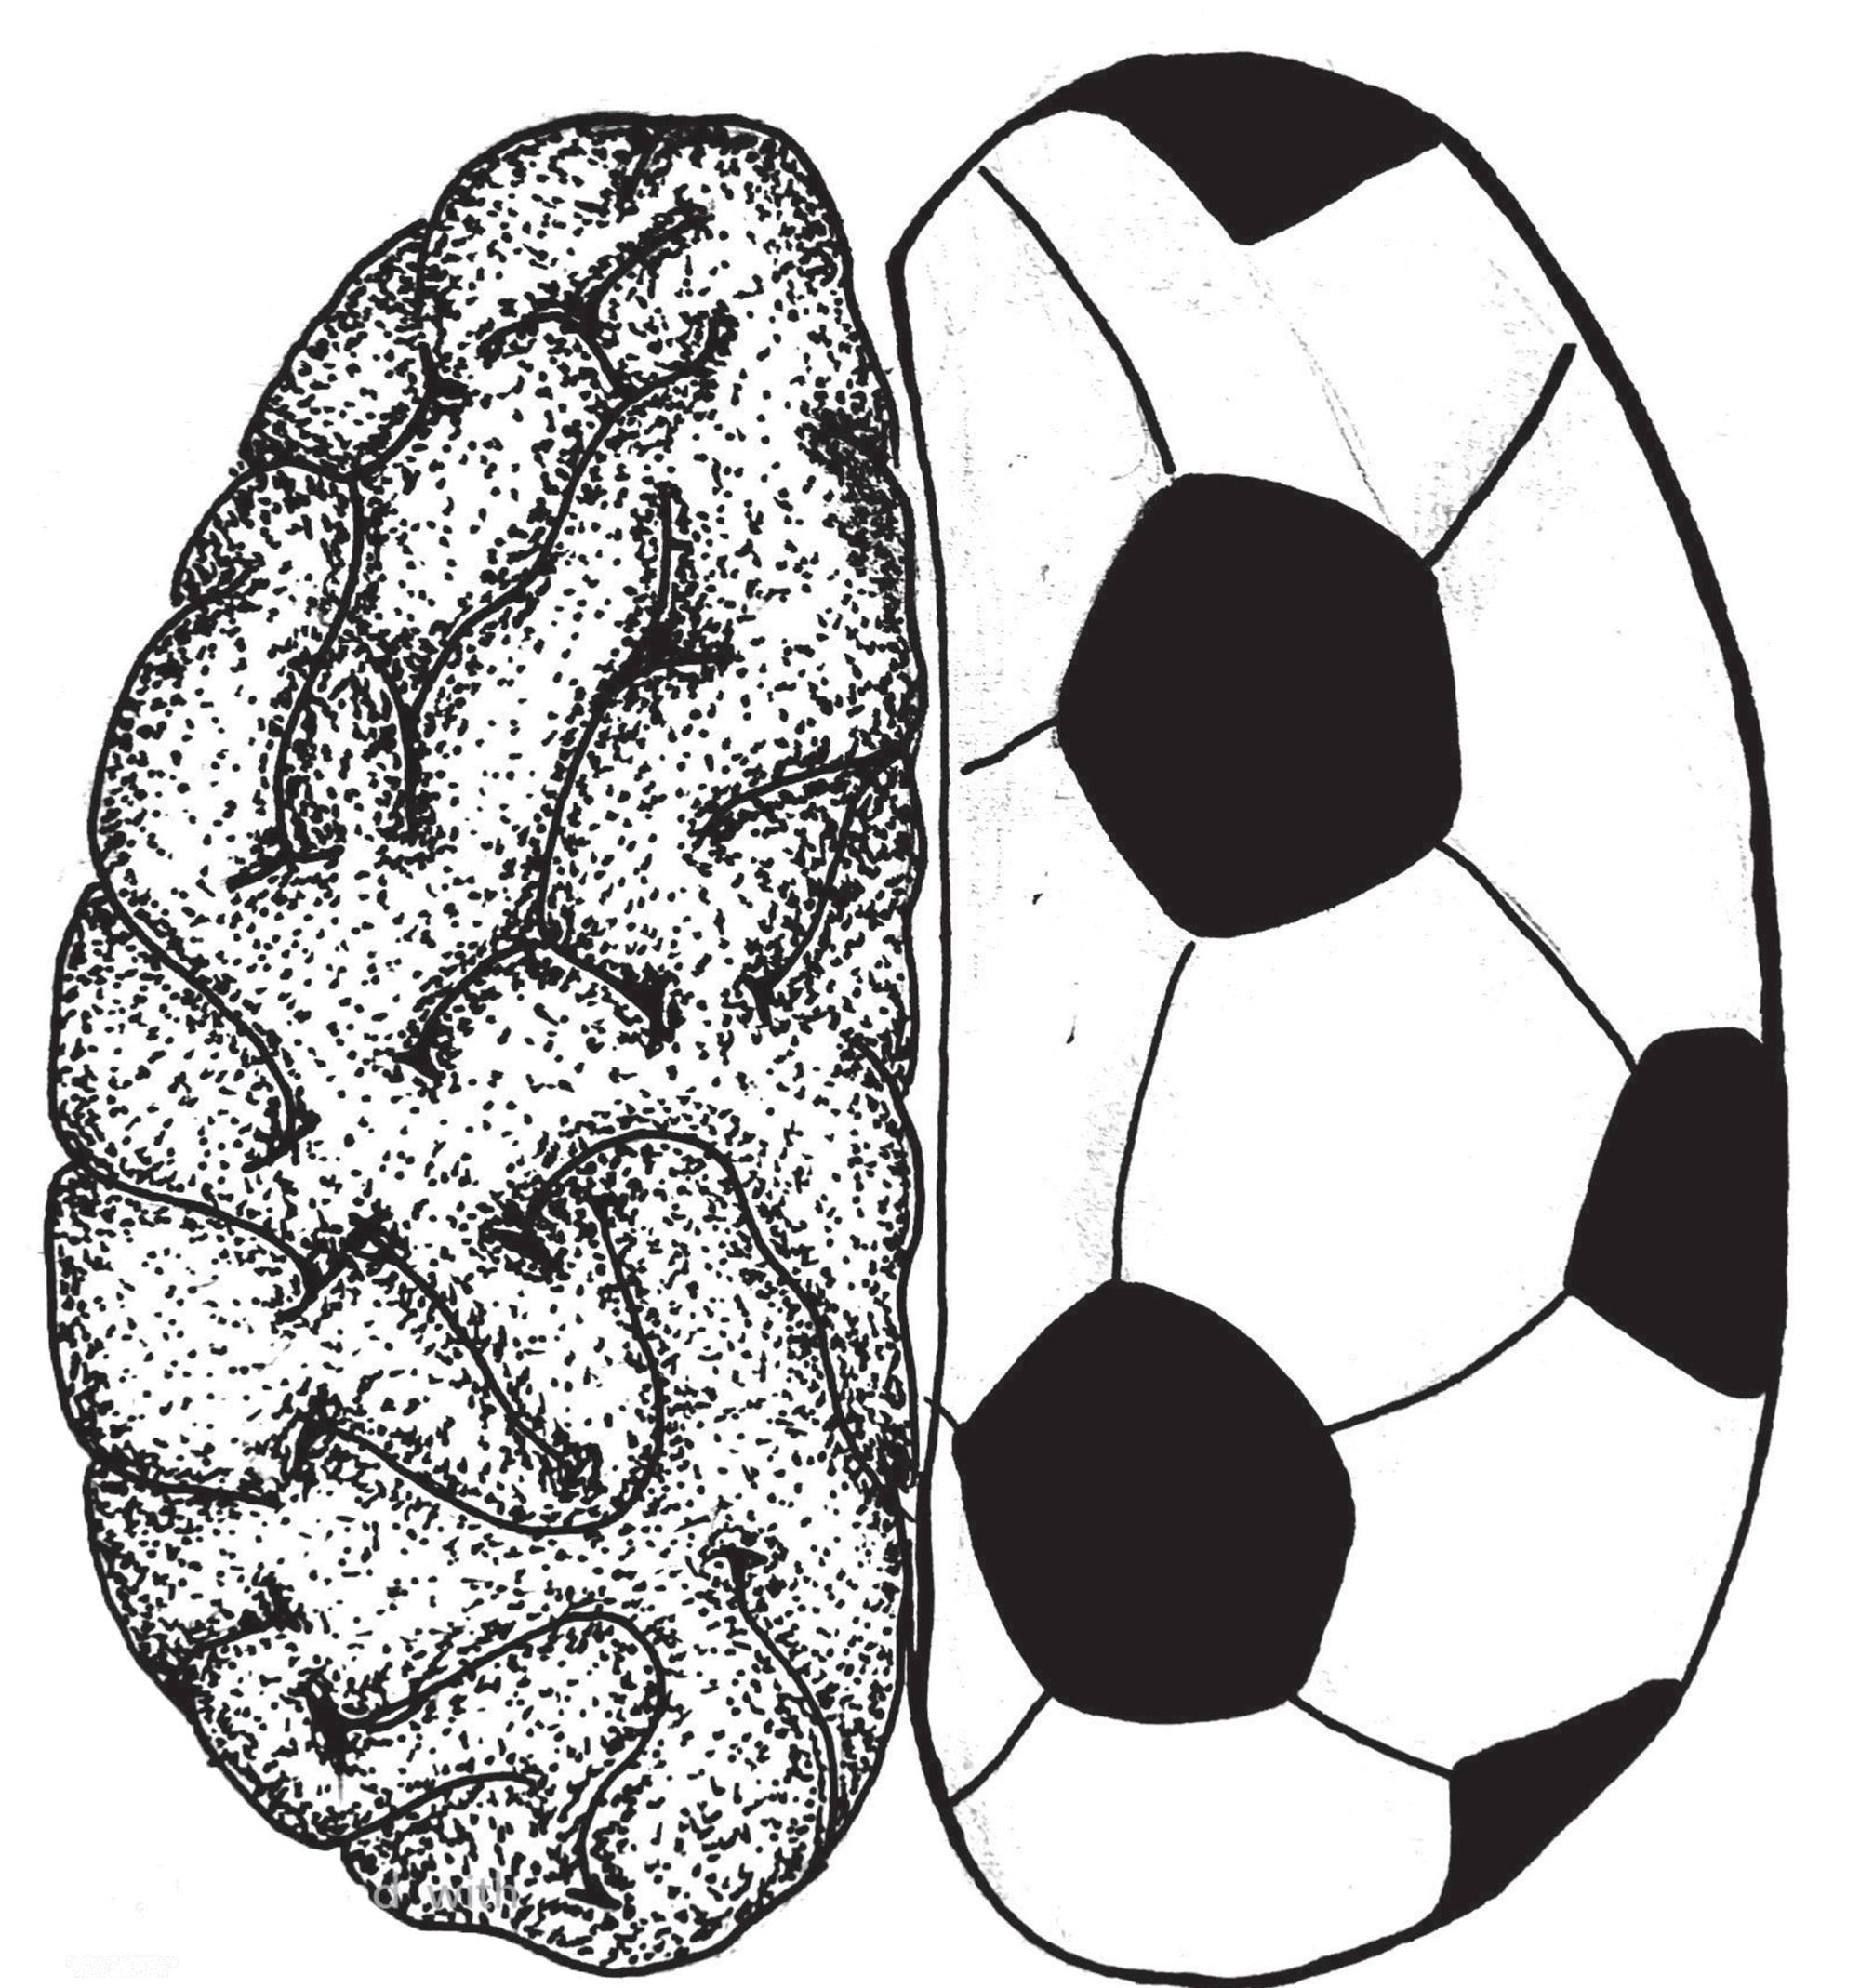 Mental health and Sport